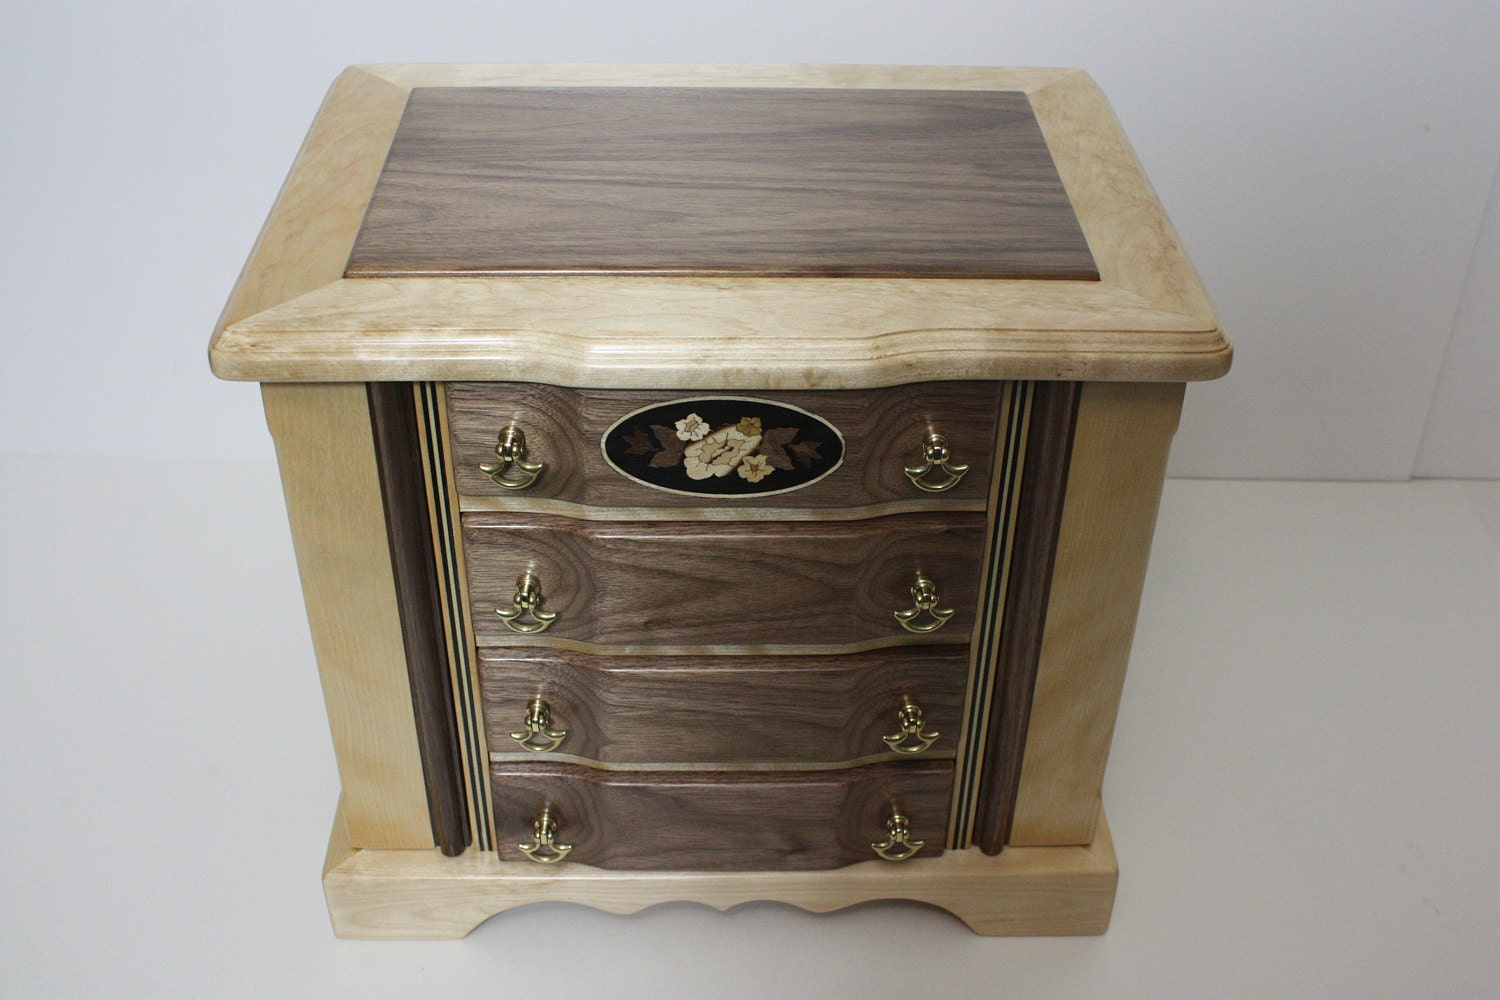 Handmade Jewelry Box with Drawers and Swing Out Sides